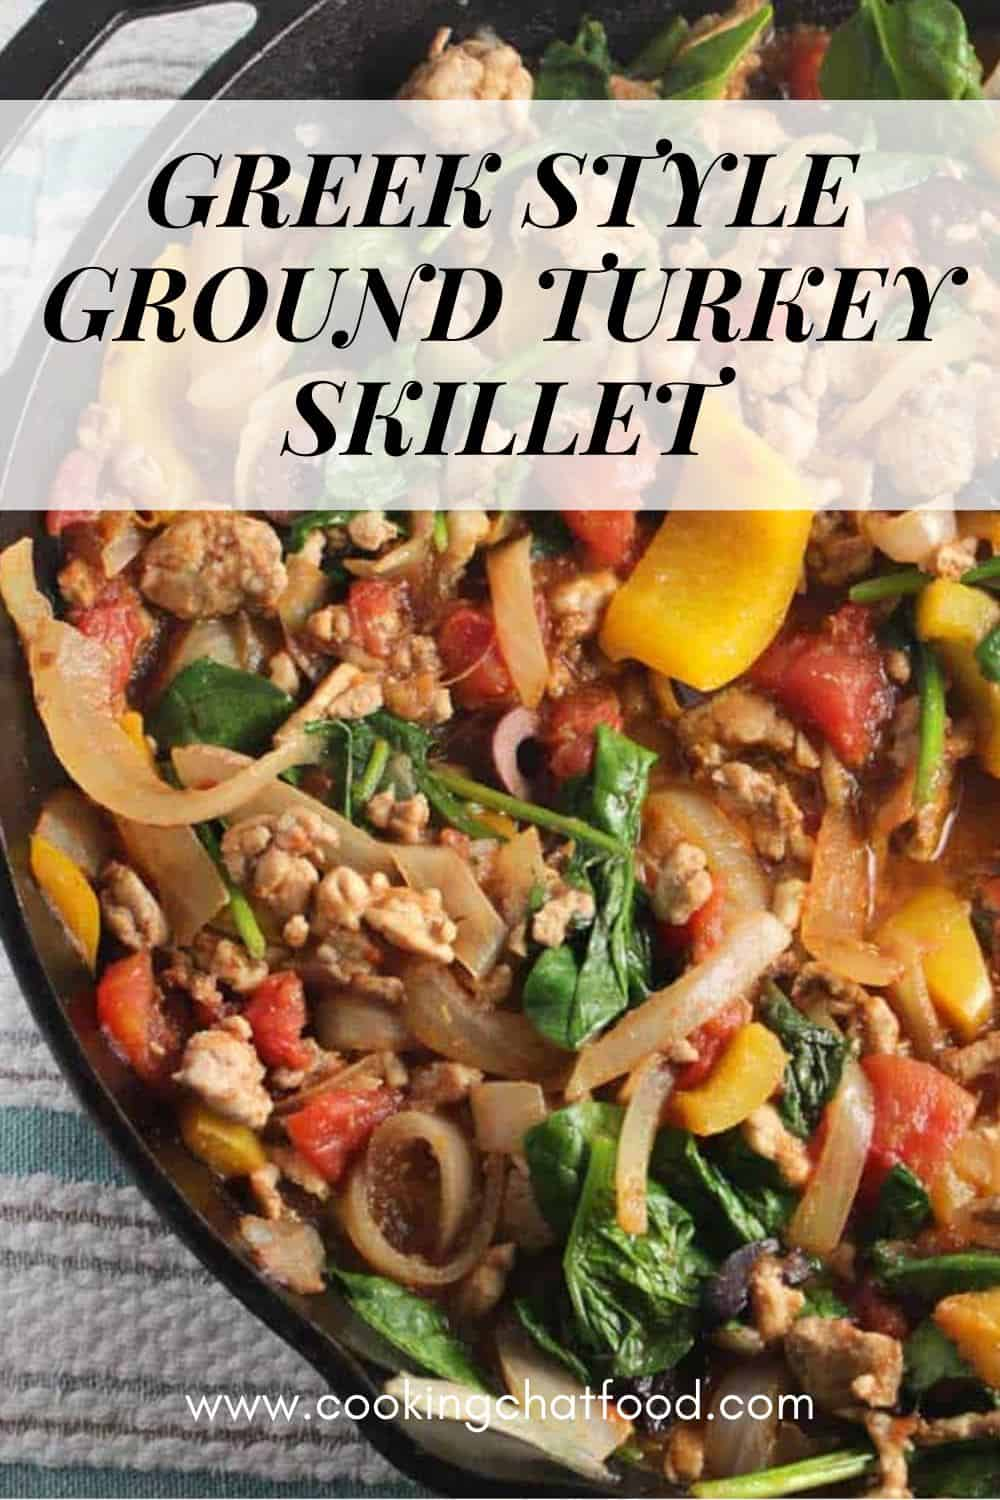 close up of skillet with ground turkey and vegetables with a text overlay.